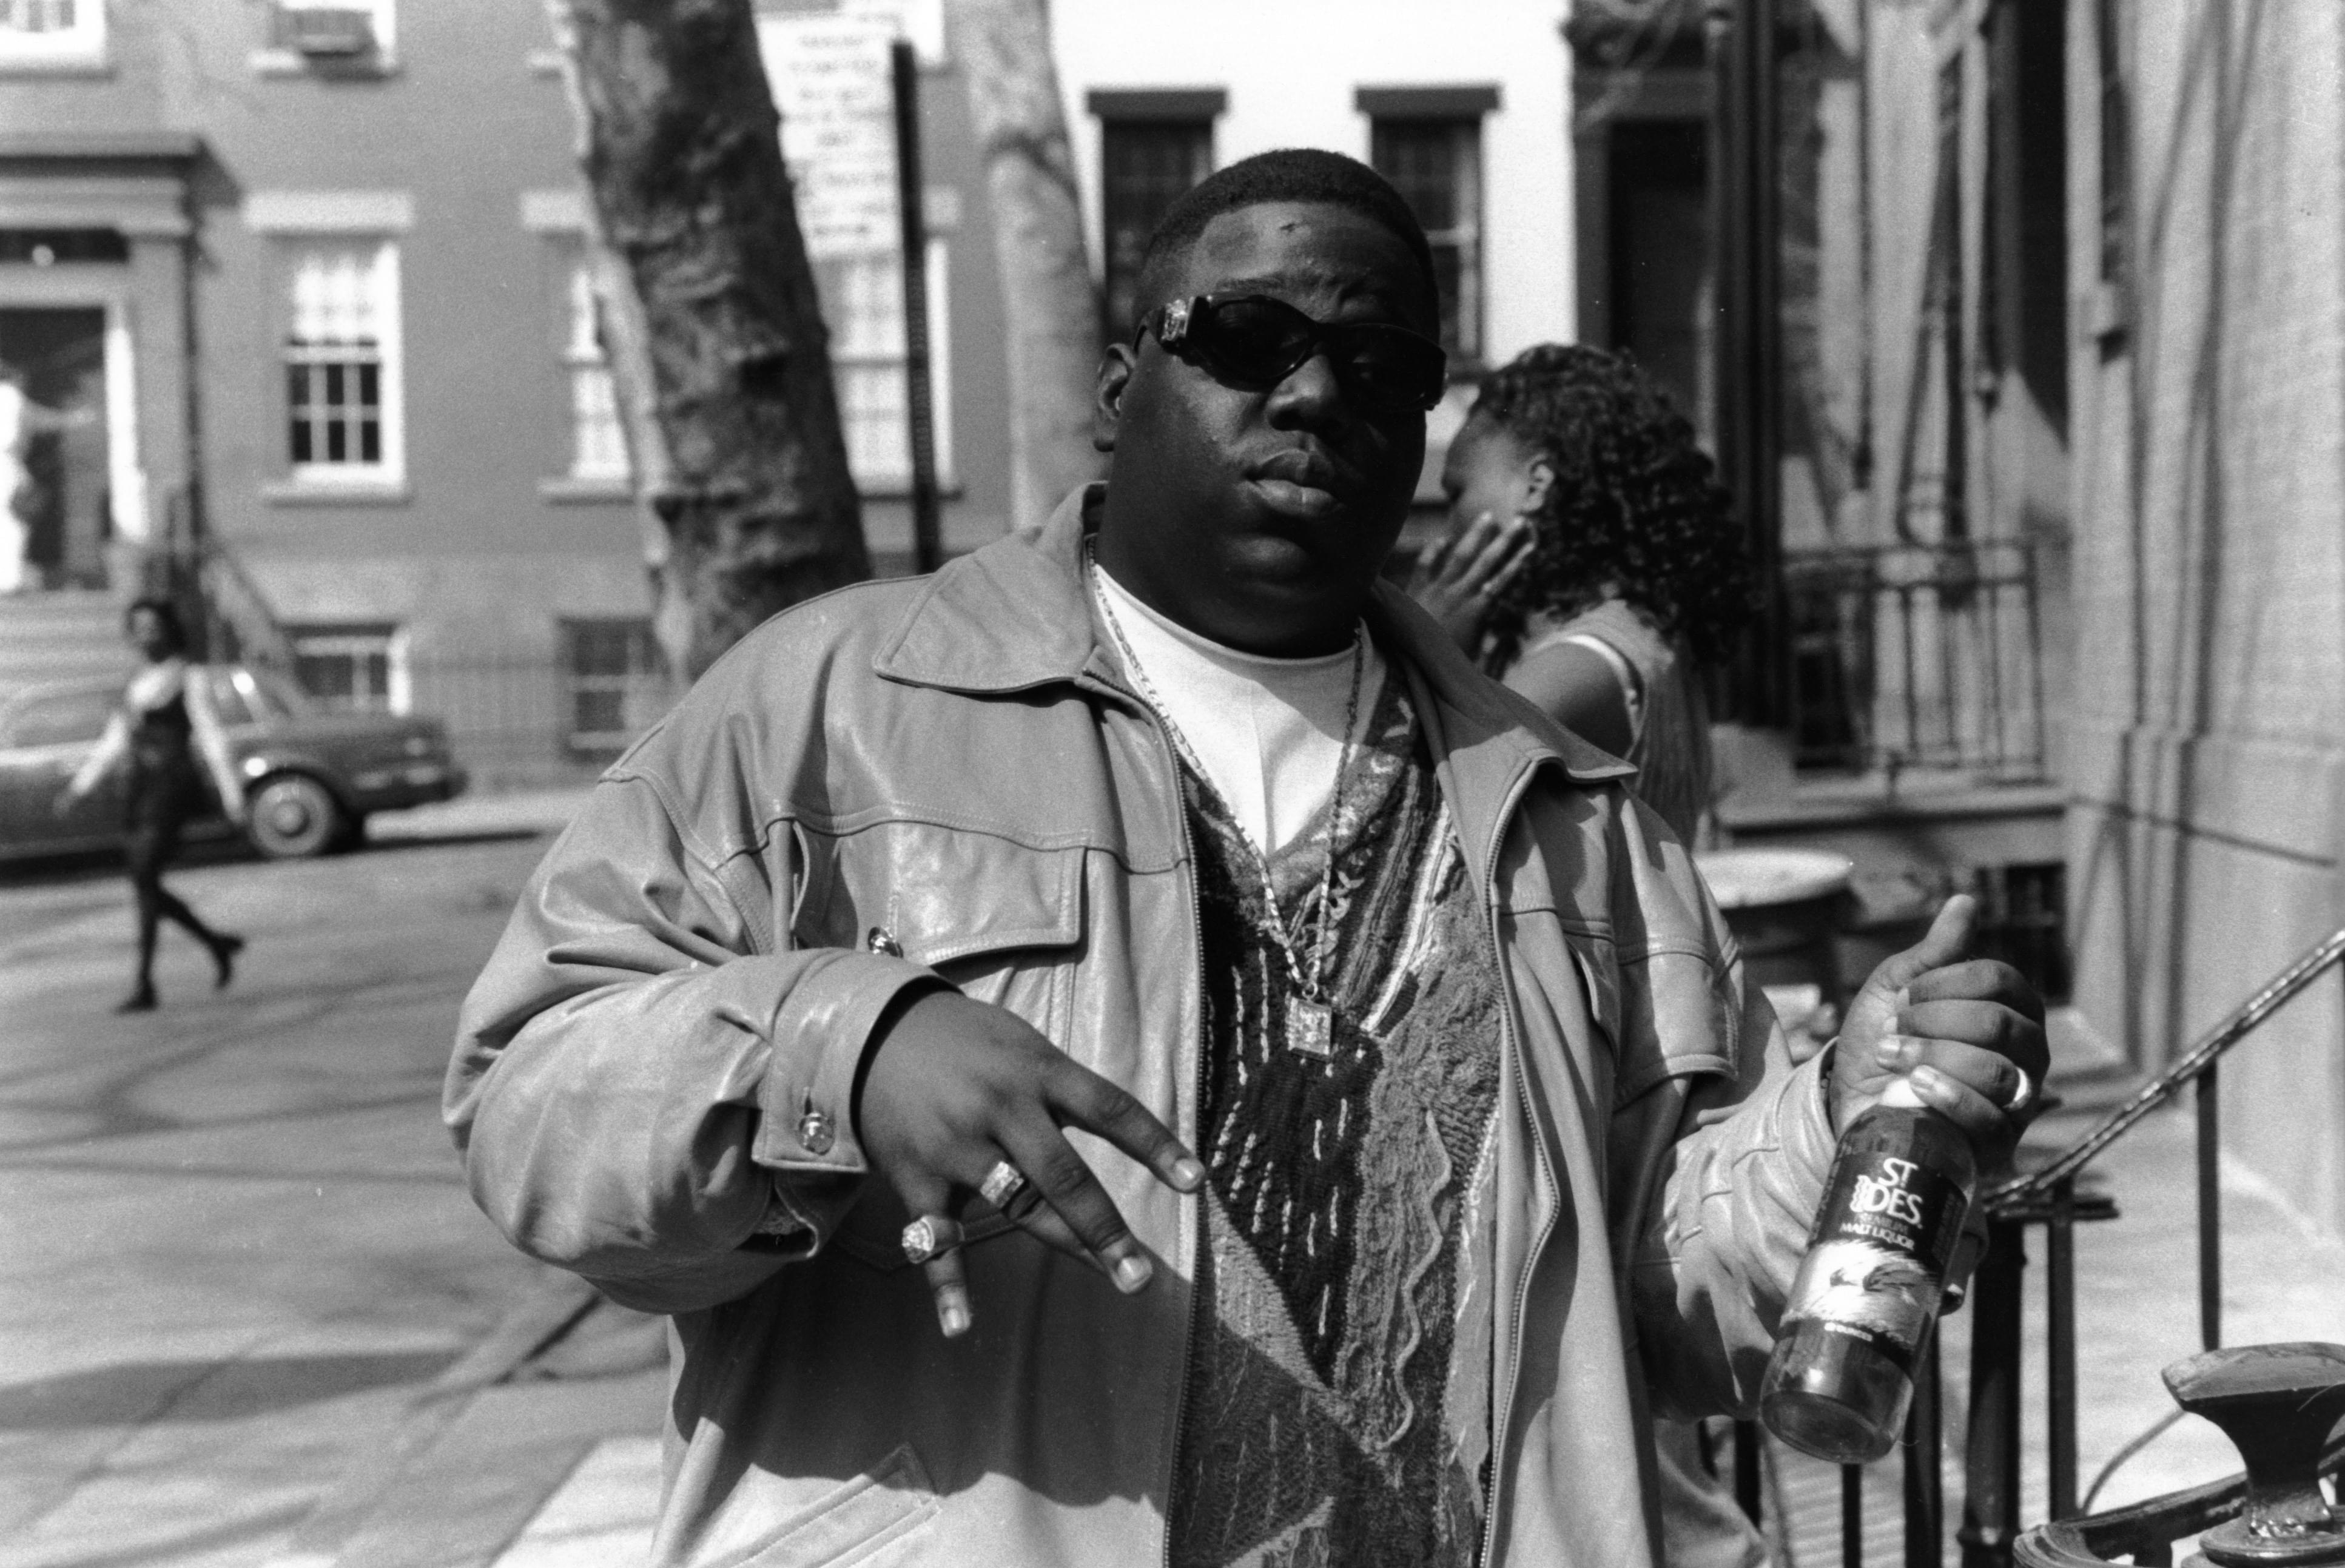 Notorious B.I.G. Officially Inducted Into Rock & Roll Hall Of Fame